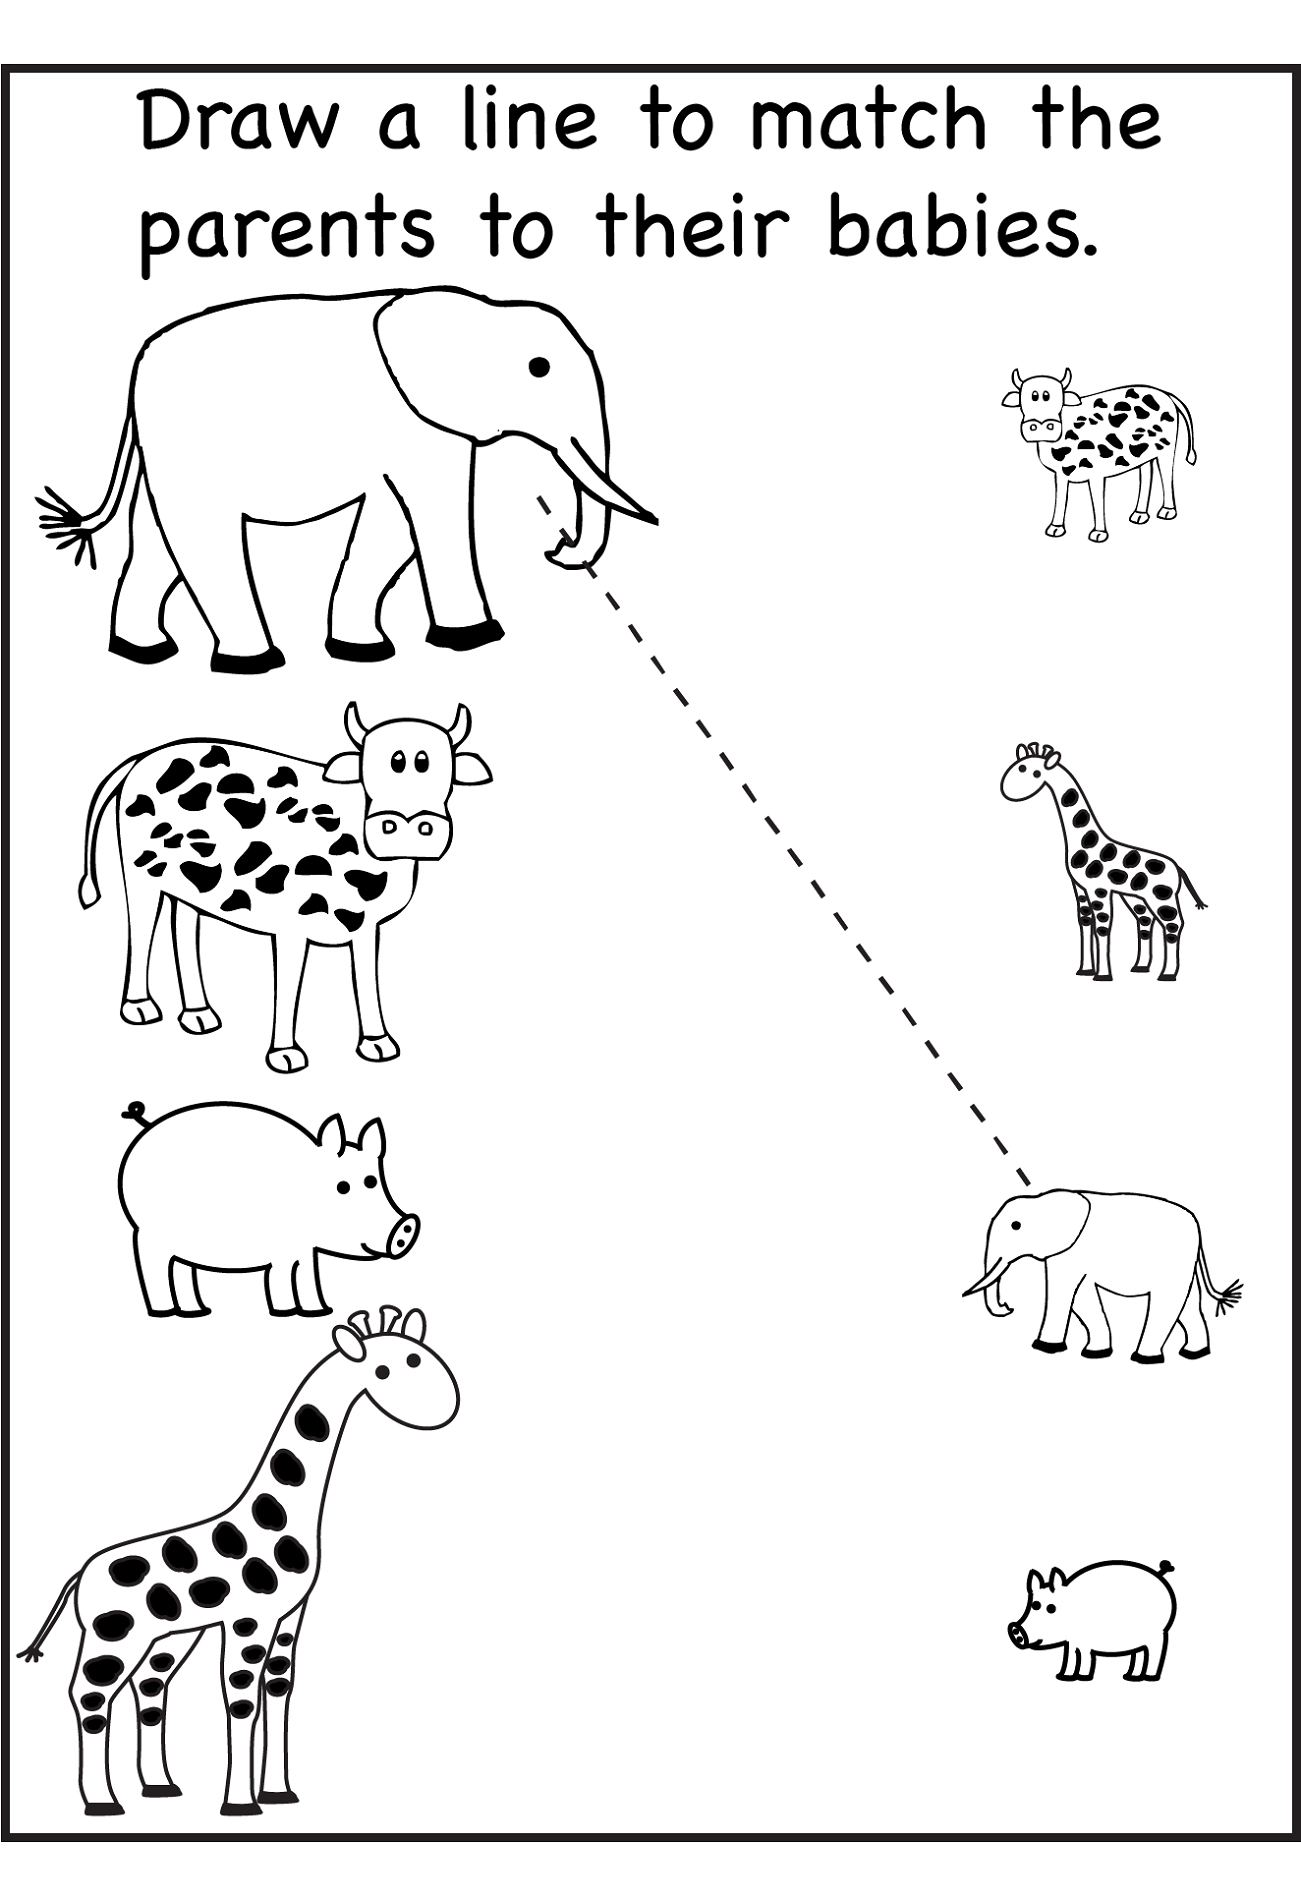 Free Preschool Worksheets Age 3 – With Printable Also 4 Worksheet | Free Printable Preschool Worksheets Age 3